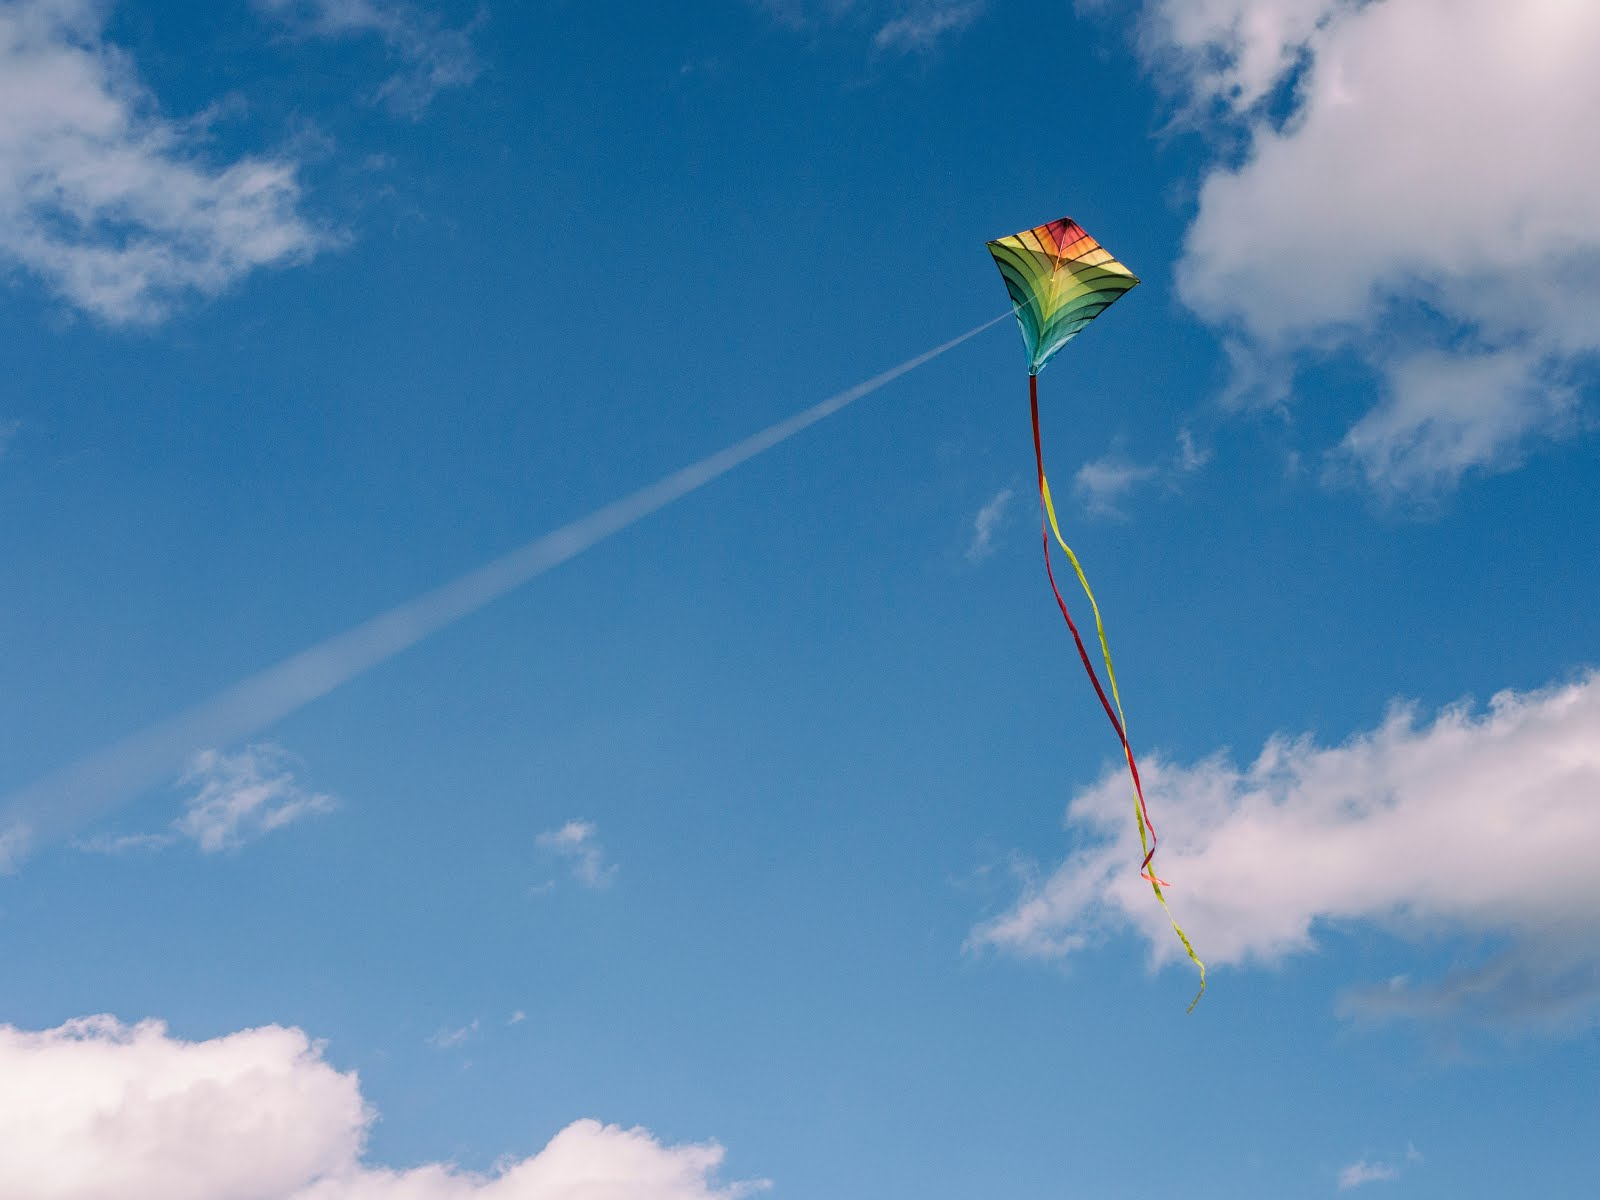 A Kite Flies And Art Is Beautiful Because Of Rules